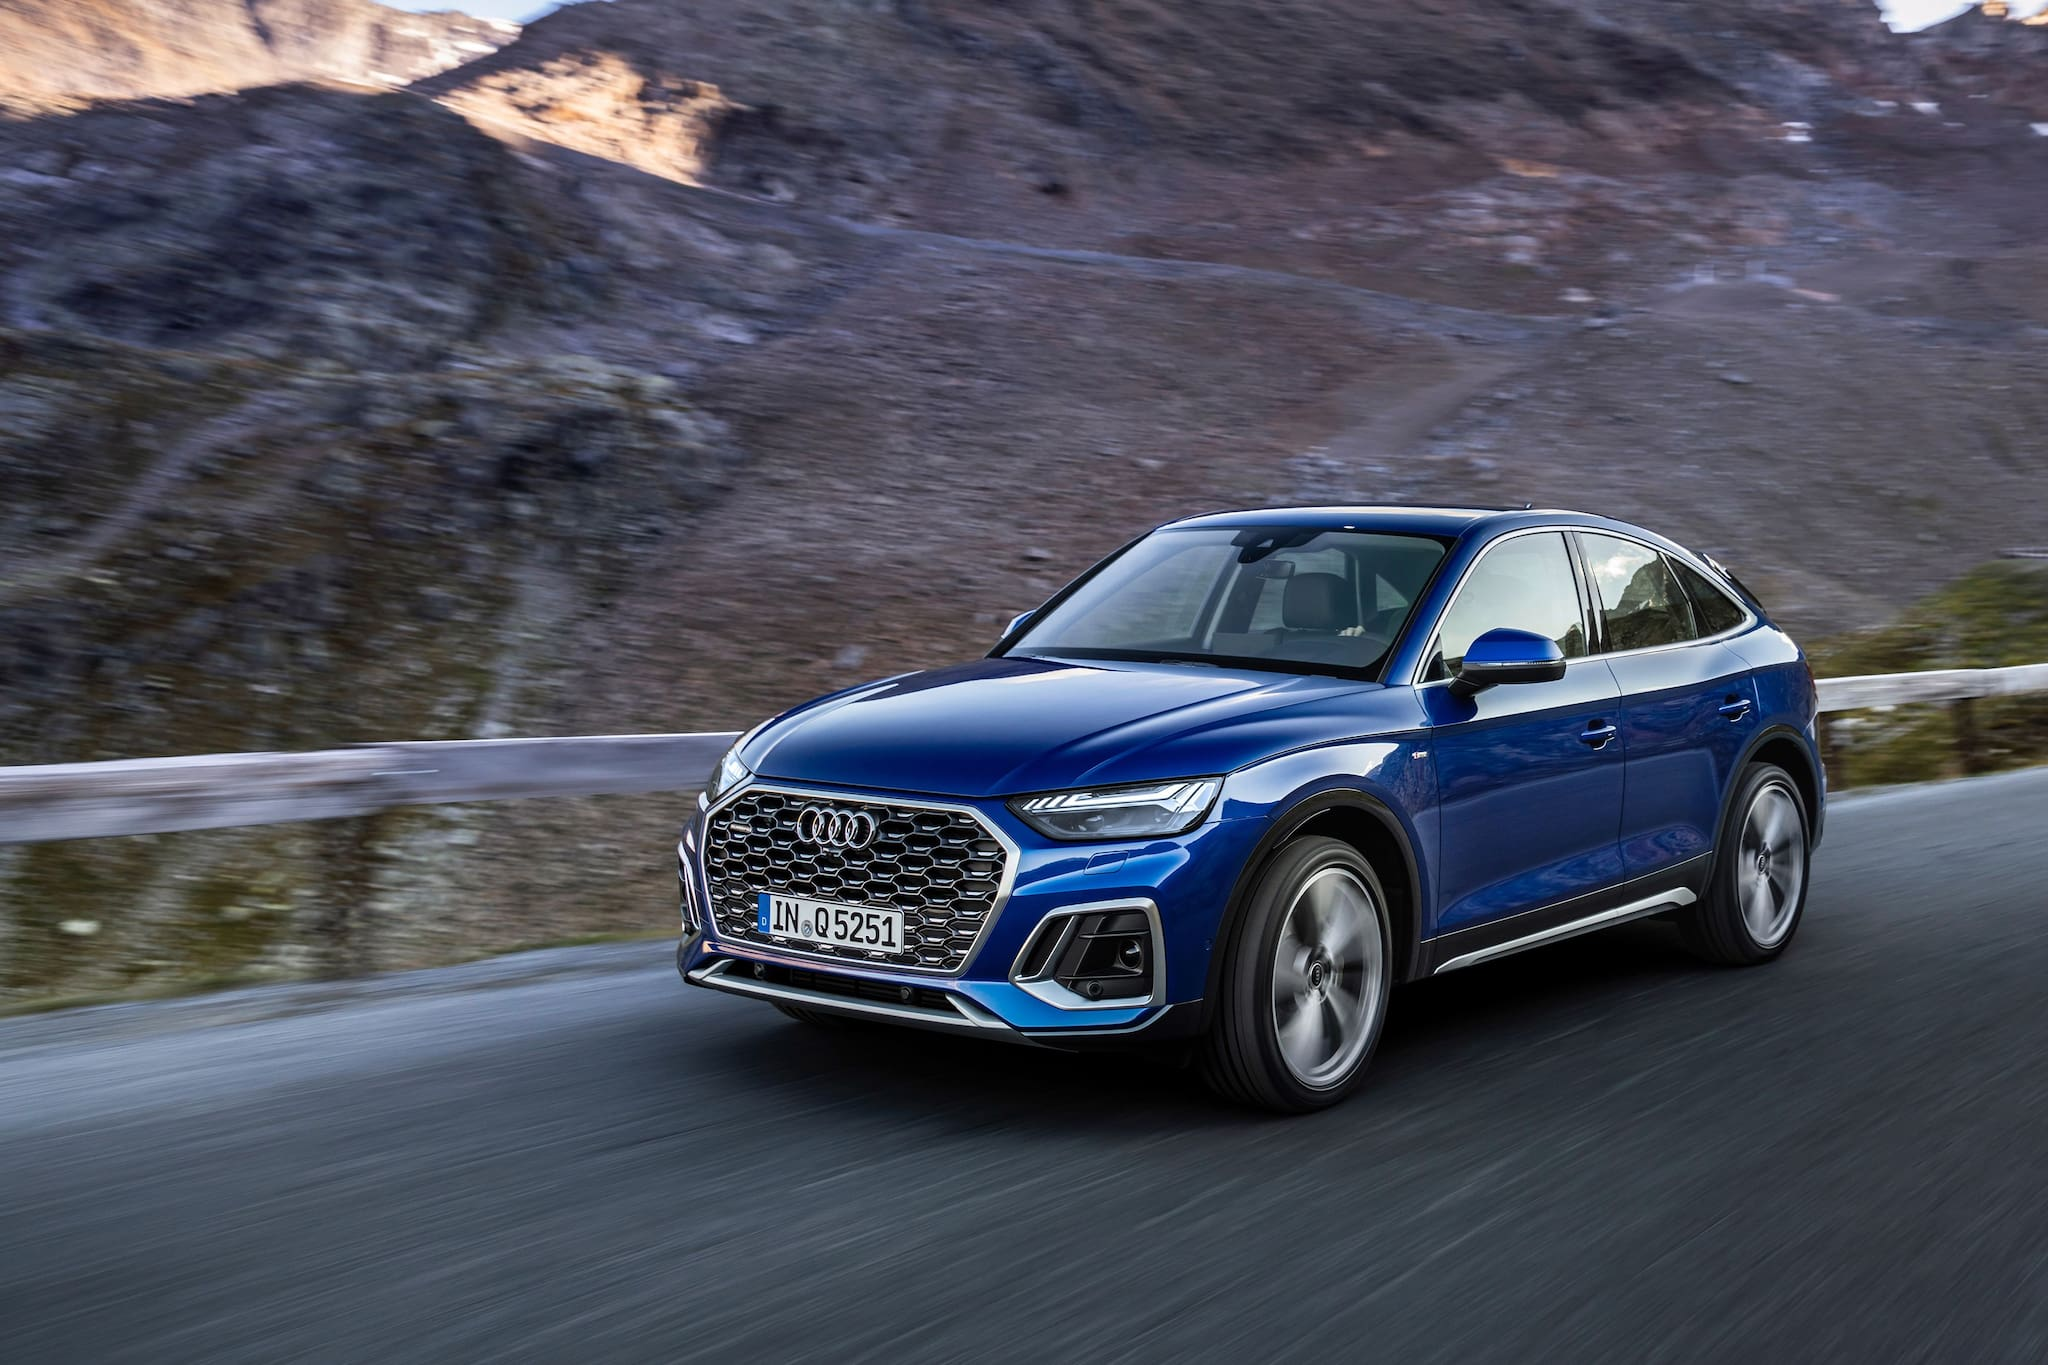 Audi Q5 gets new Sportback body with TDI and TFSI engines